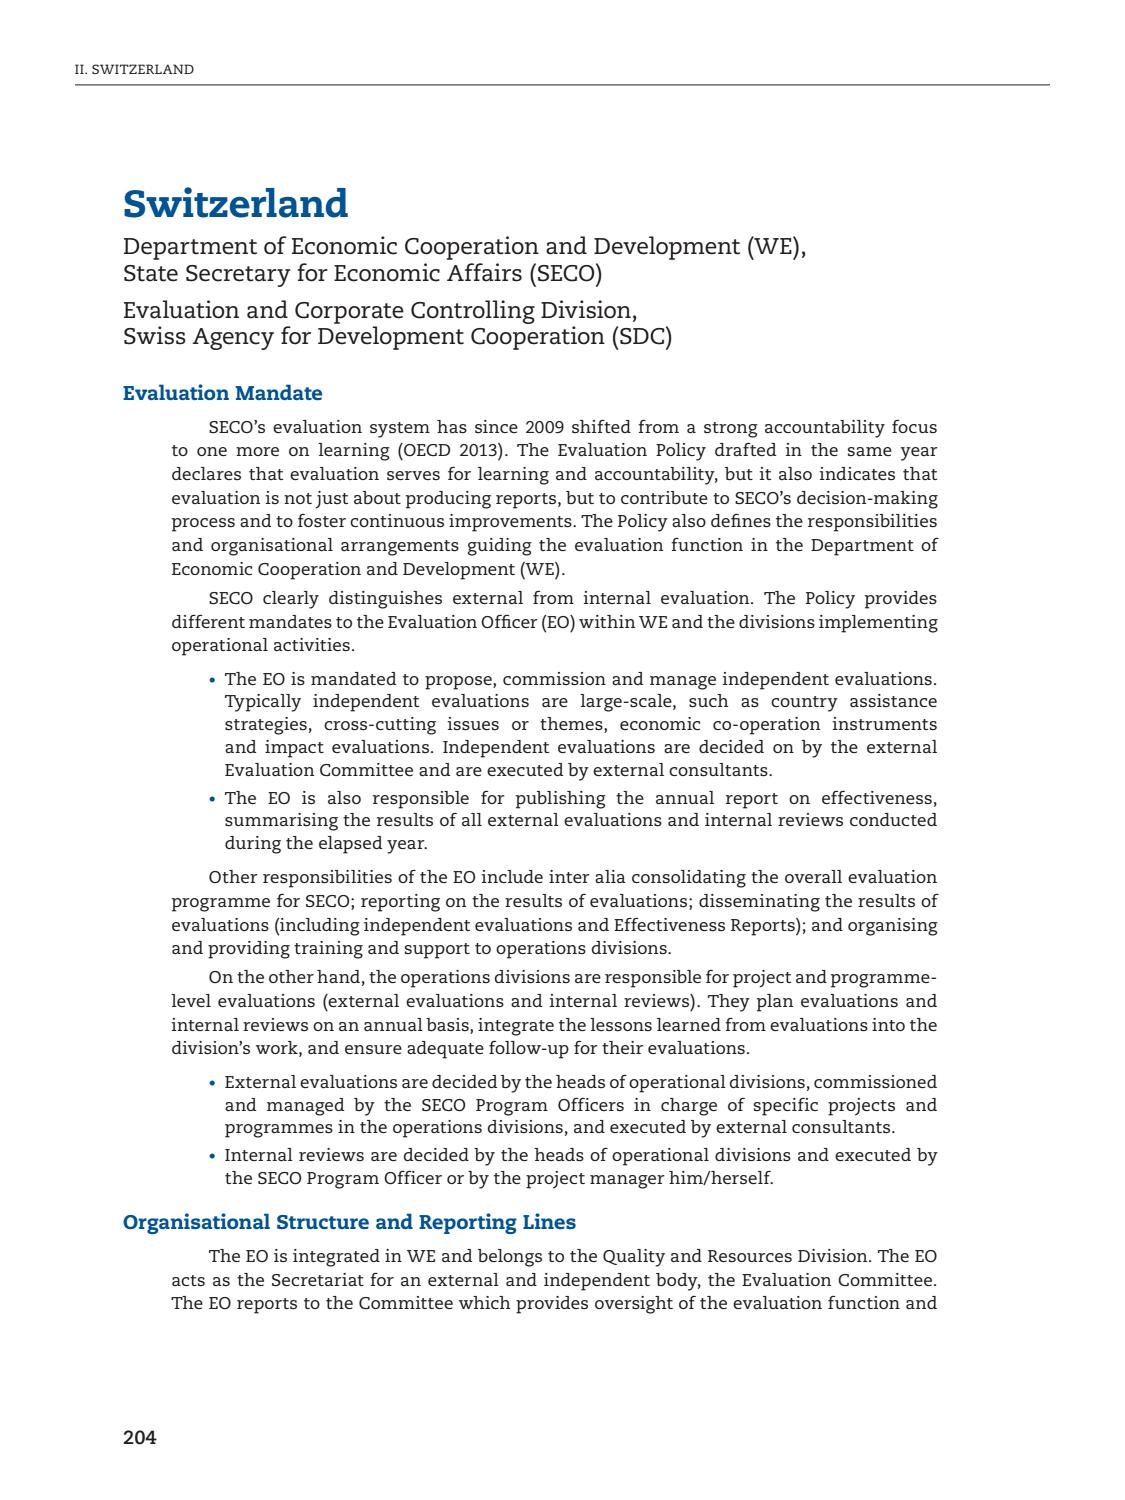 Switzerland Evaluation Profile - Evaluation Systems Review